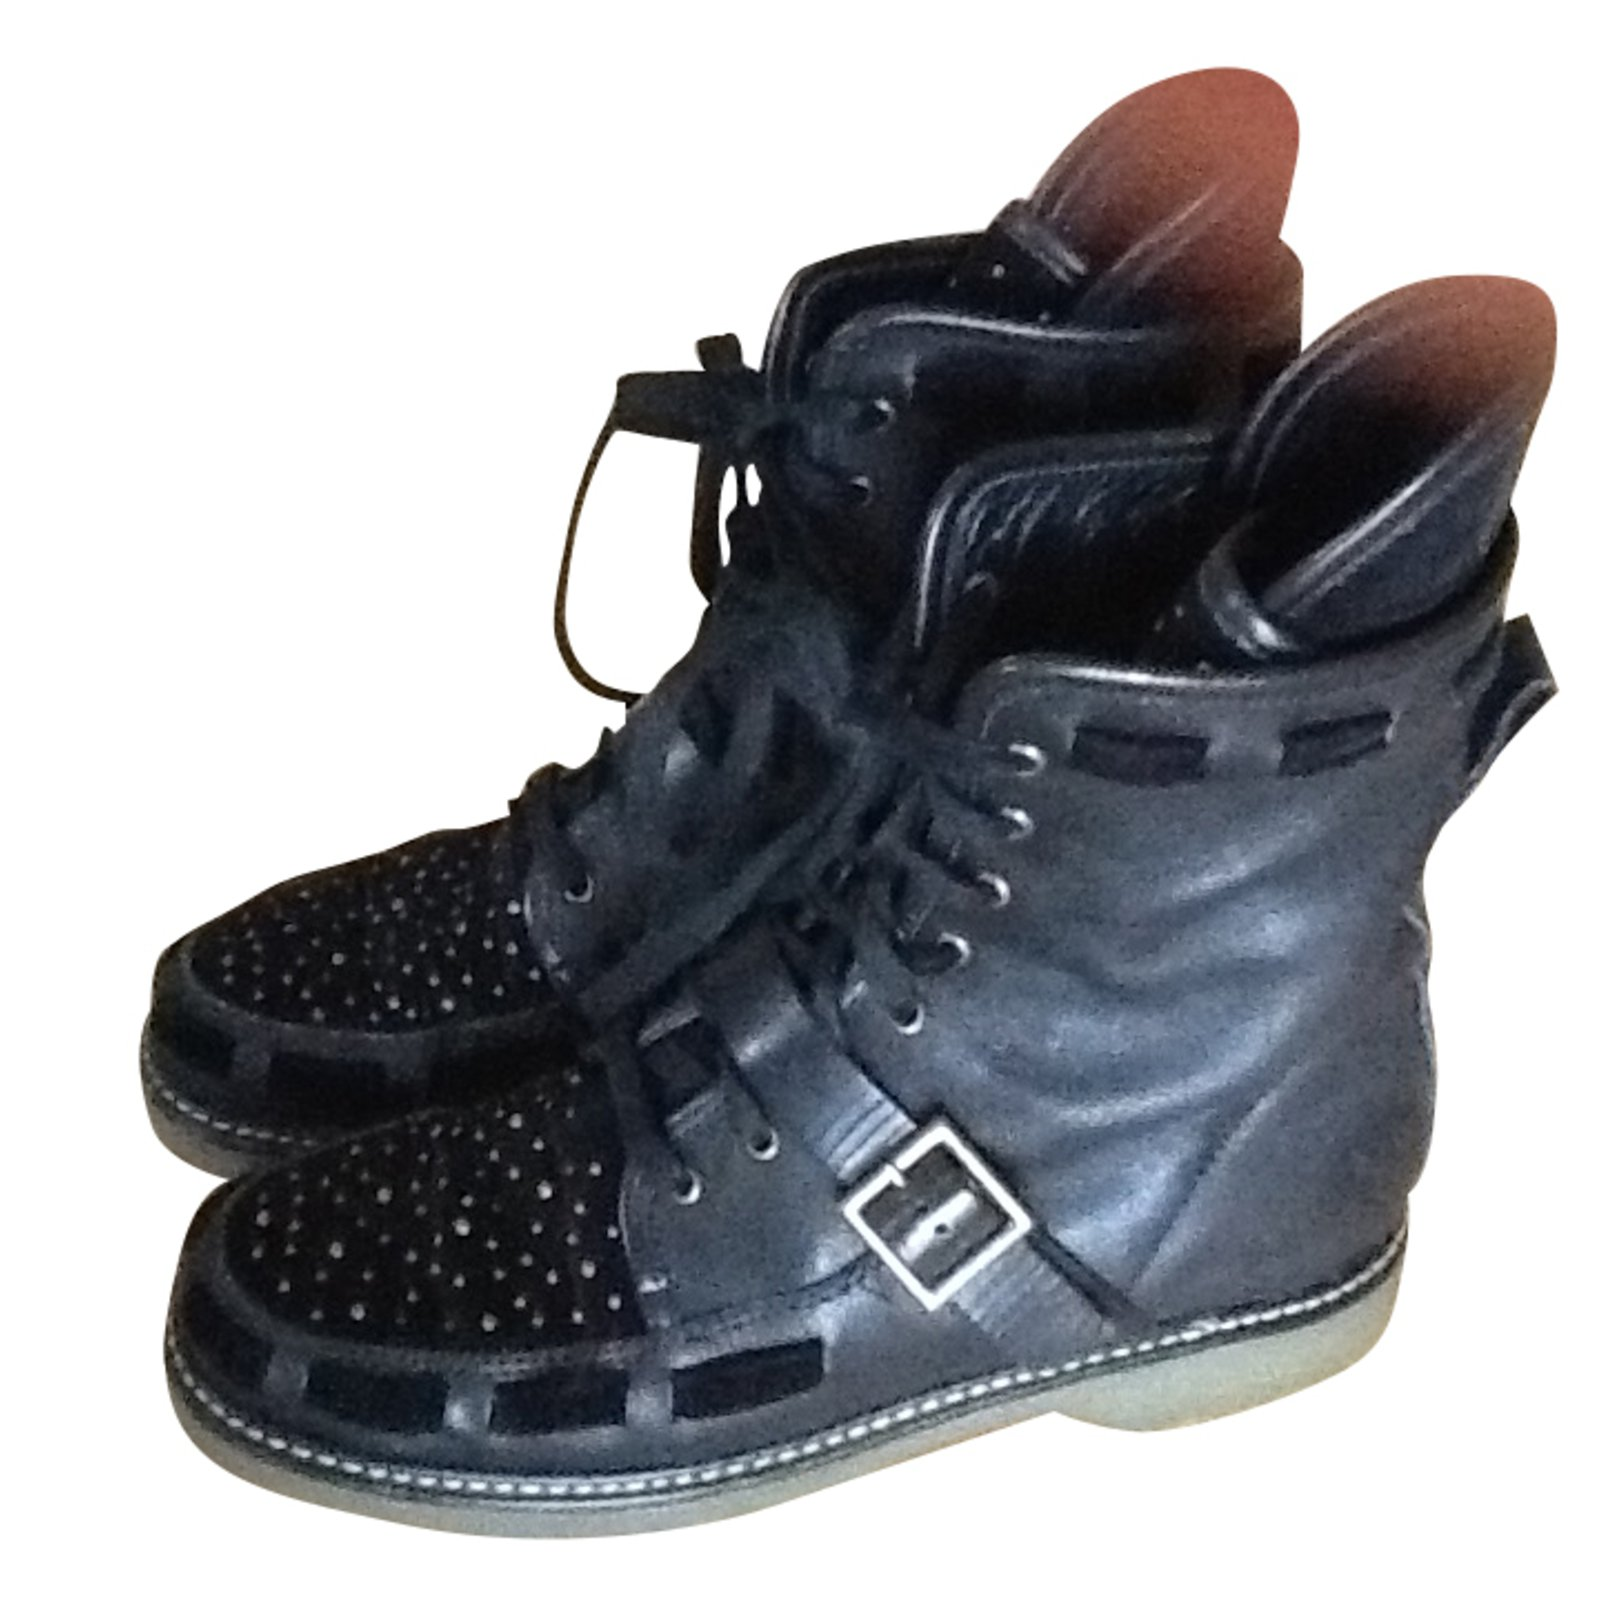 purchase cheap outlet special for shoe See by Chloé Boots Boots Leather Black ref.36090 - Joli Closet